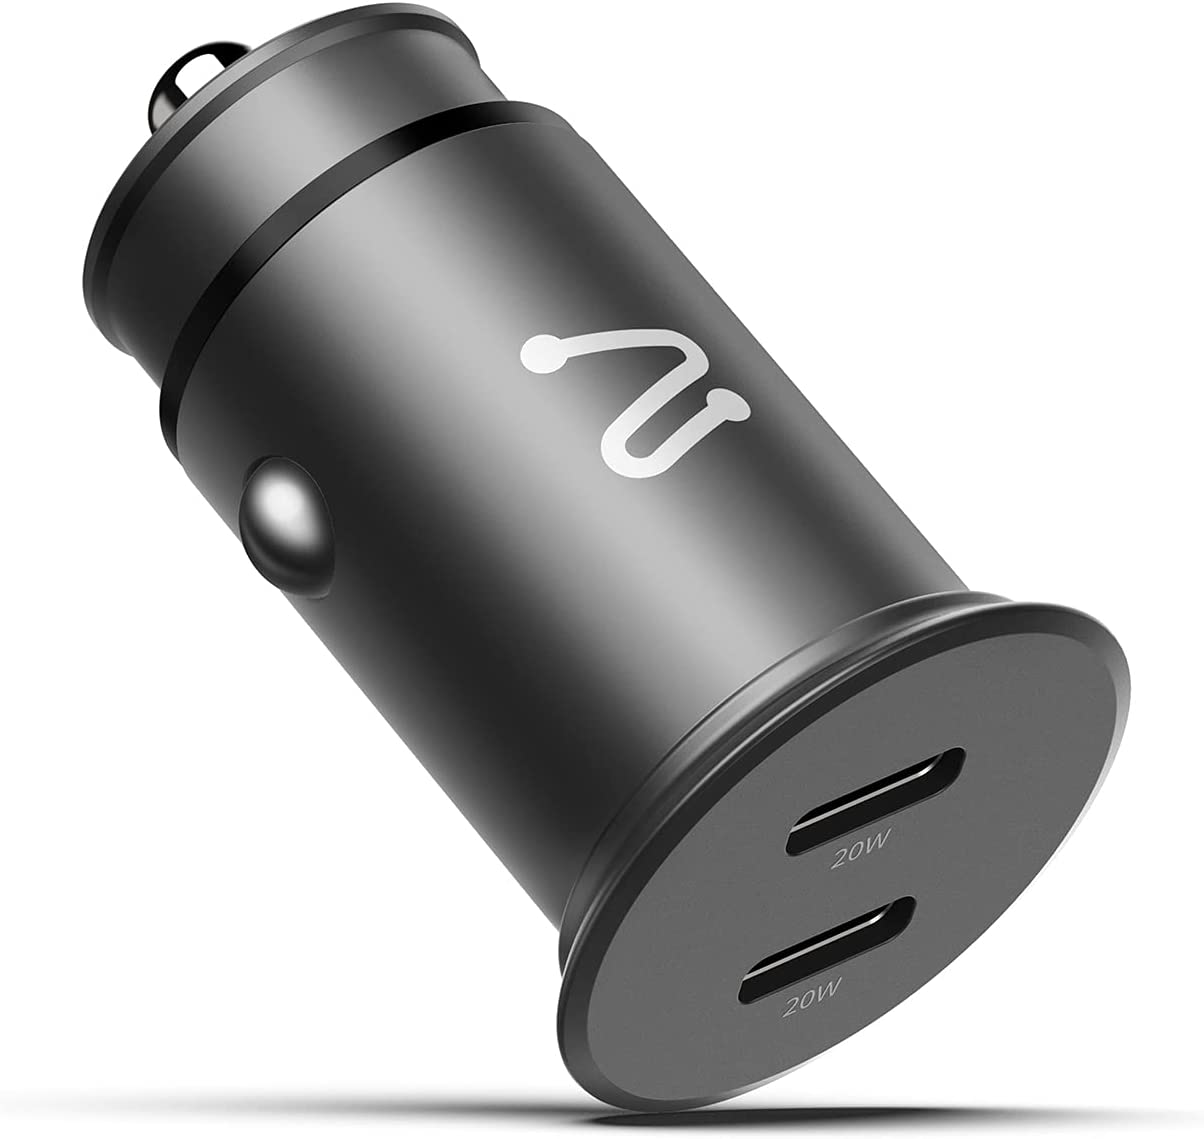 USB C Car Charger, Aergiatech 40W (20W+20W) Dual Type C PD 3.0 Port Car Charger Adapter Fast Charging for iPhone 13/13 Mini/13 Pro/12/12 Pro/12 Mini/11/11 Pro, Samsung S21/S20/S10, iPad Pro, AirPods